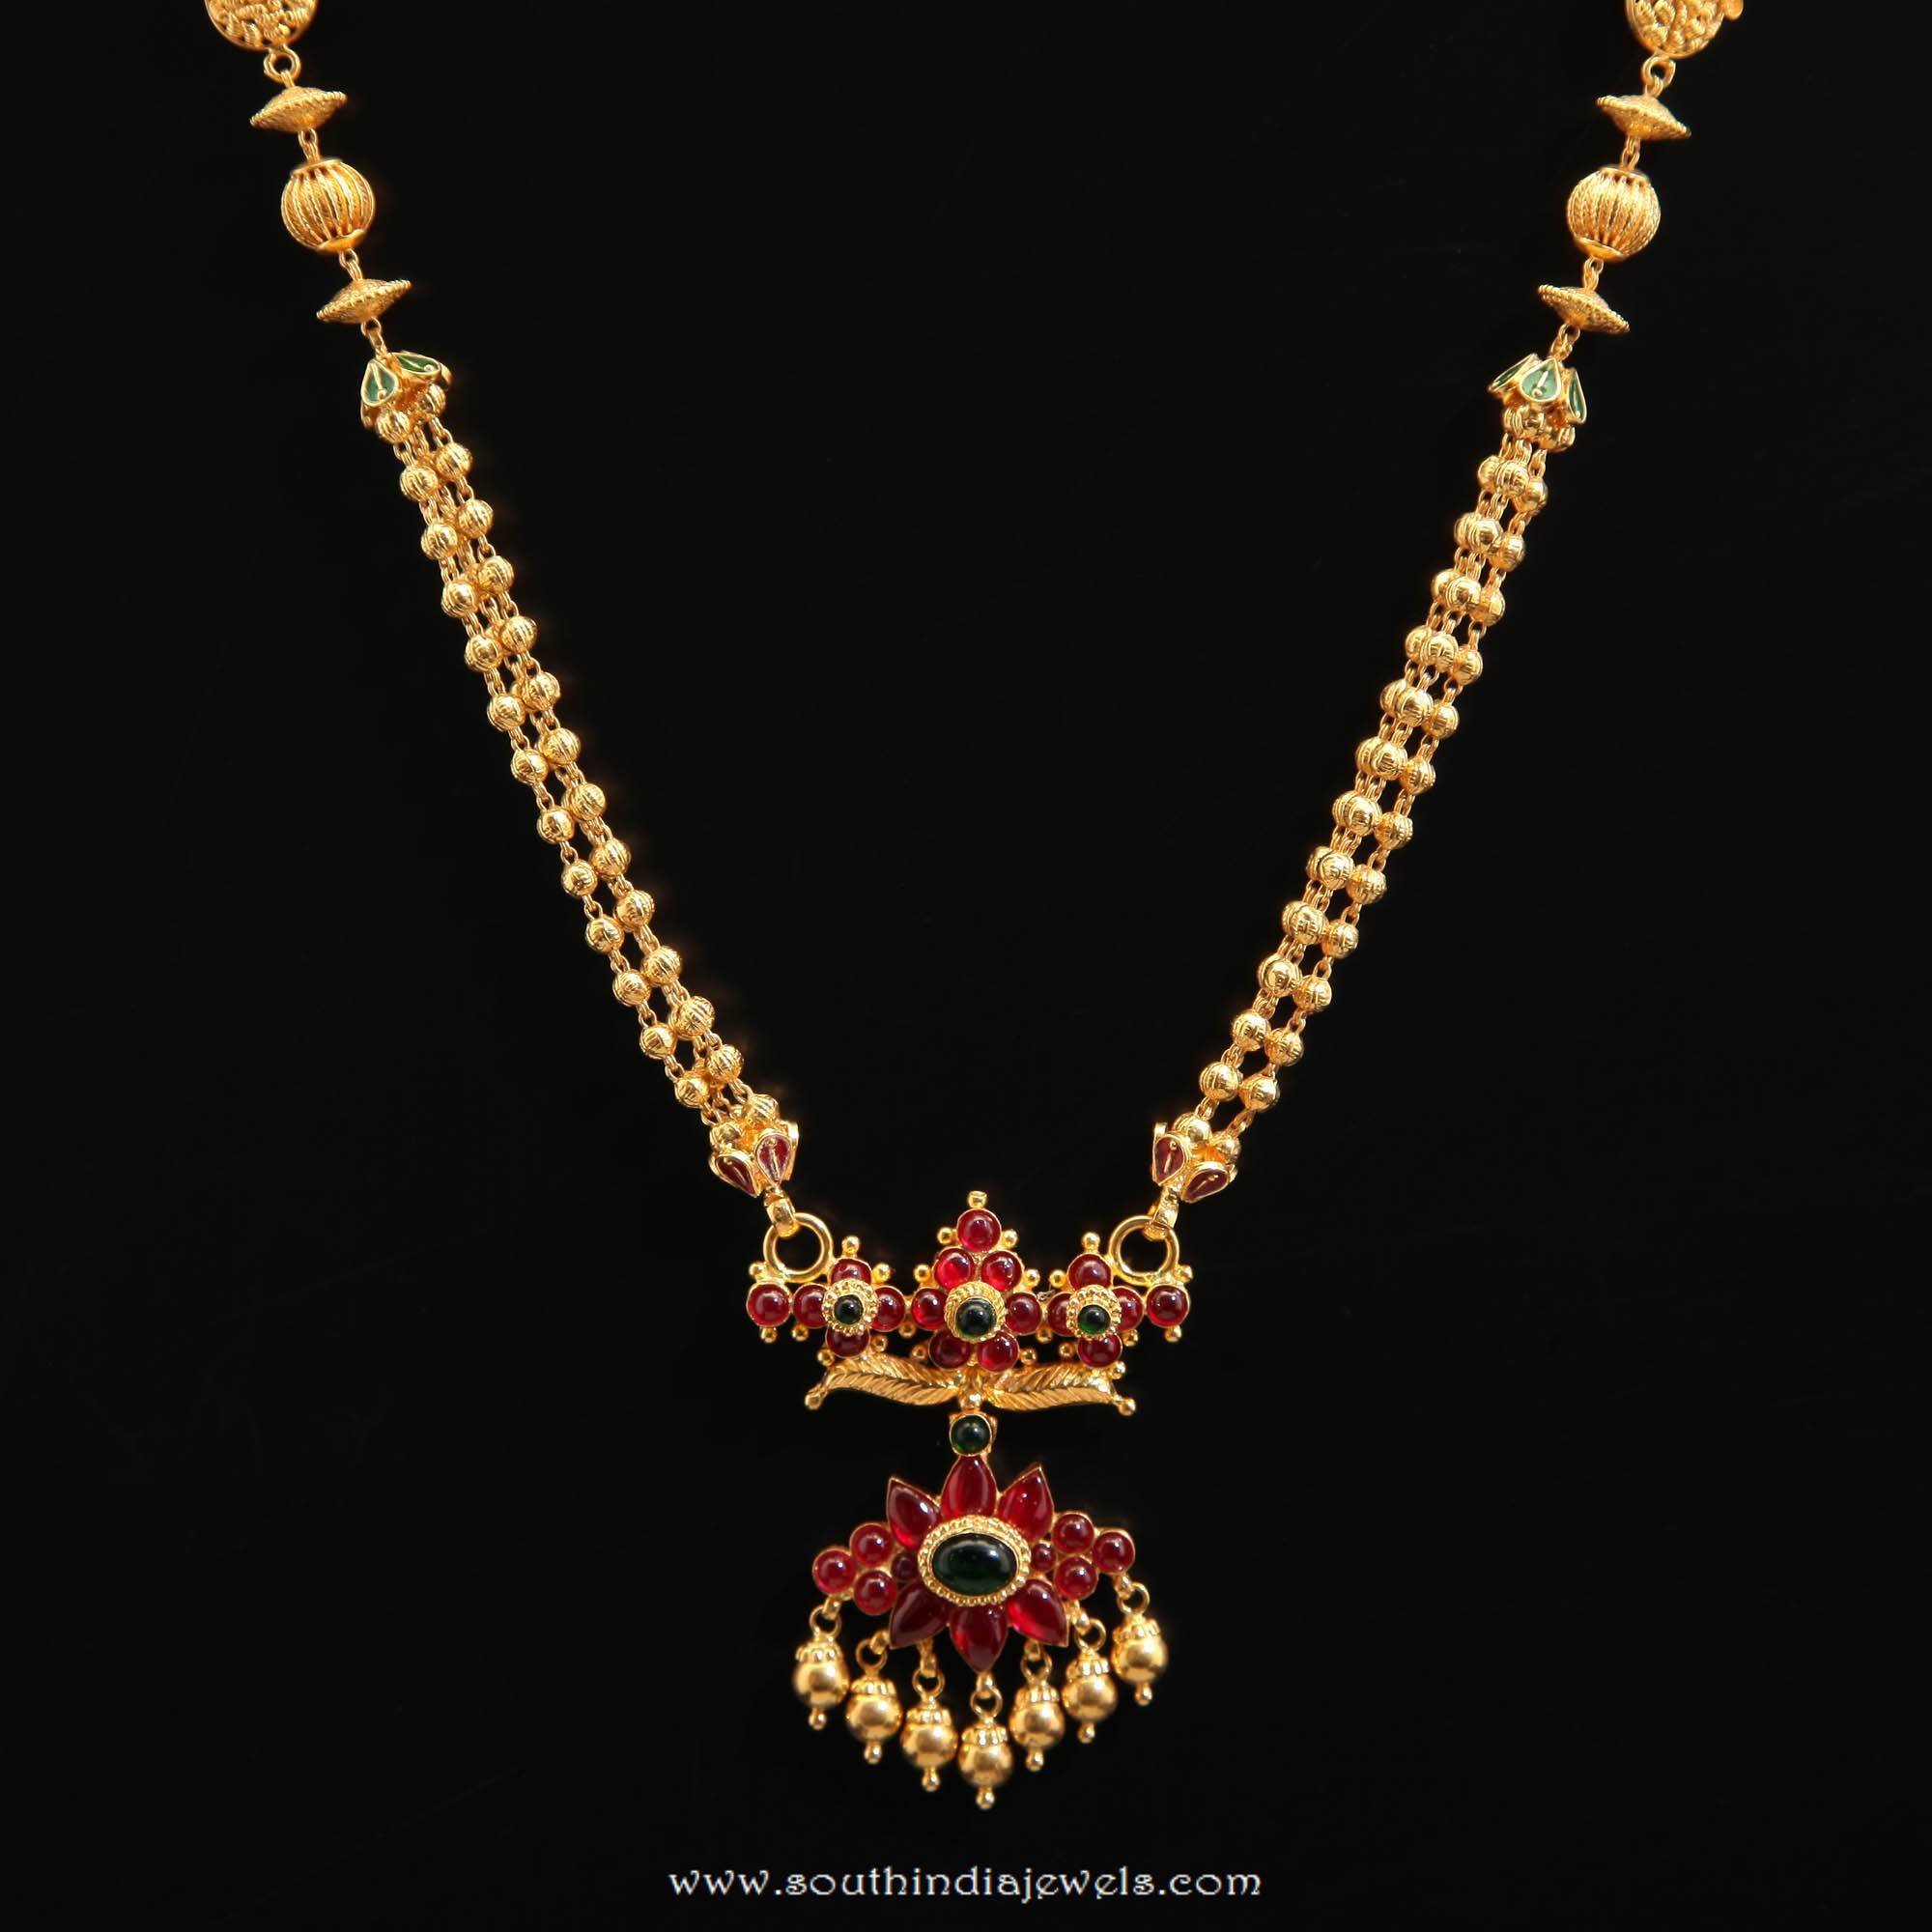 Gold Short Necklace From D.A.R Jewellers ~ South India Jewels